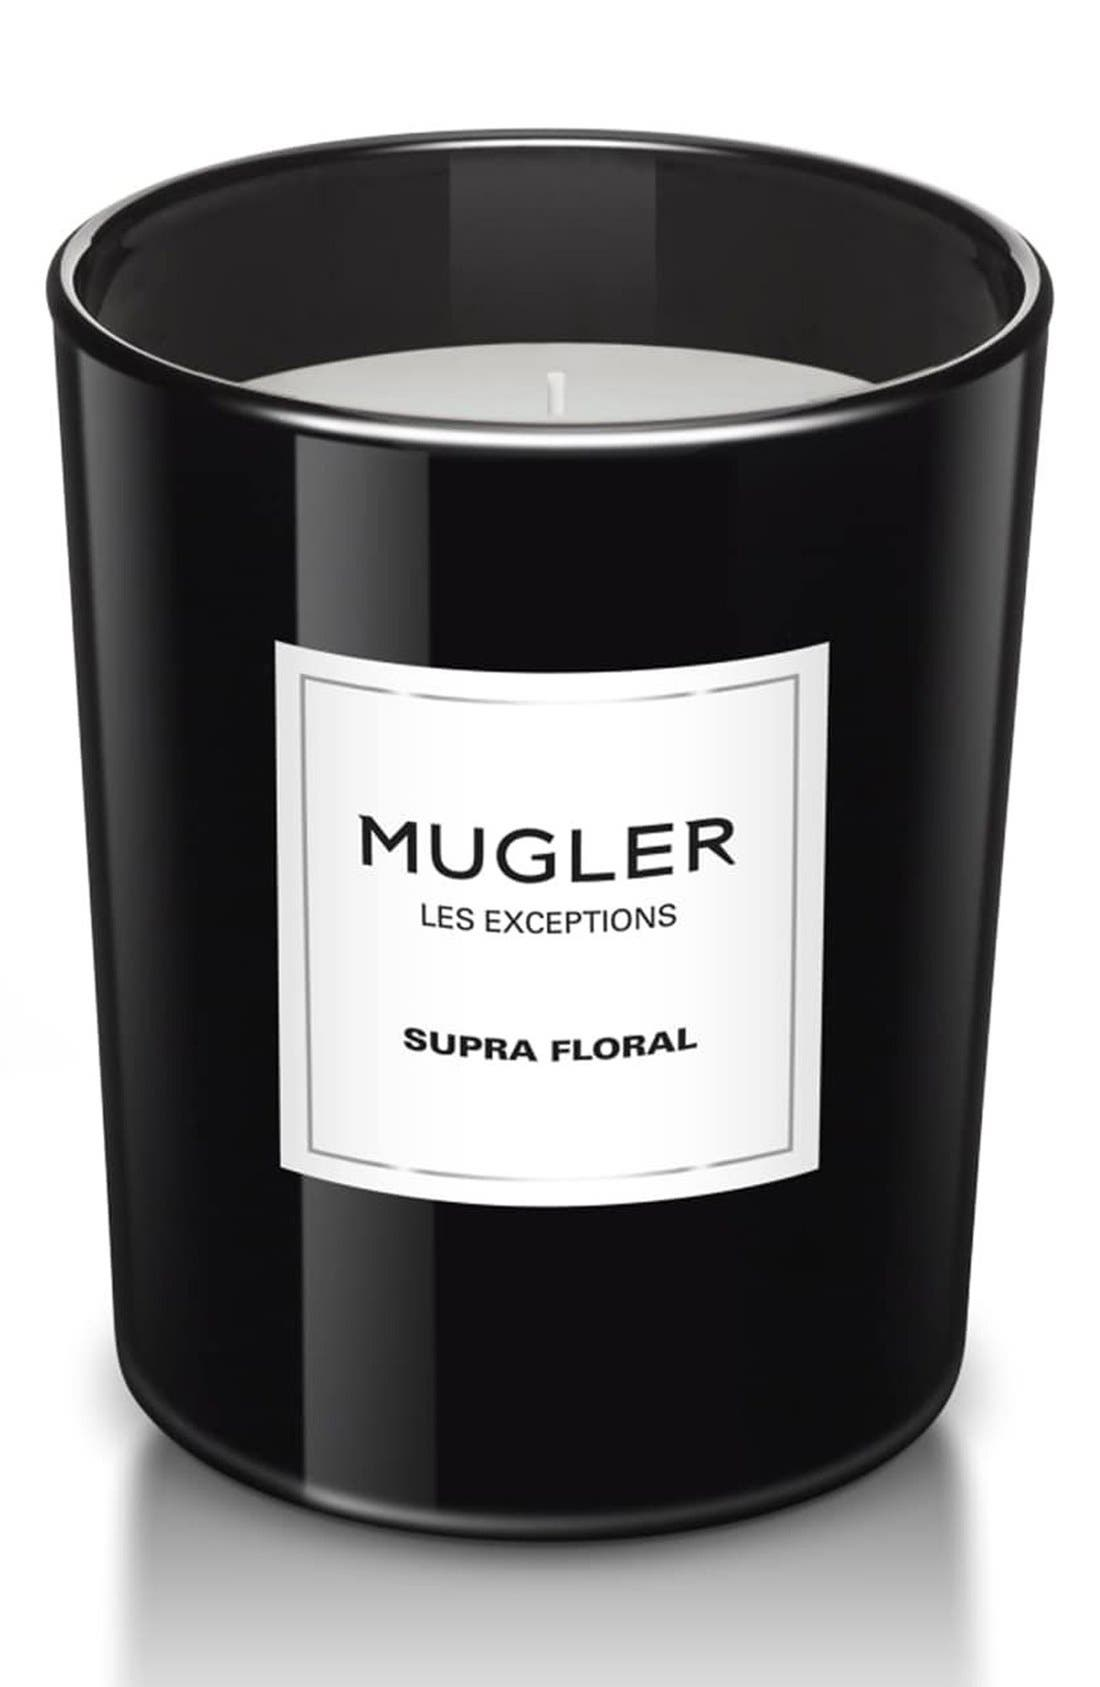 Mugler 'Les Exceptions - Supra Floral' Candle